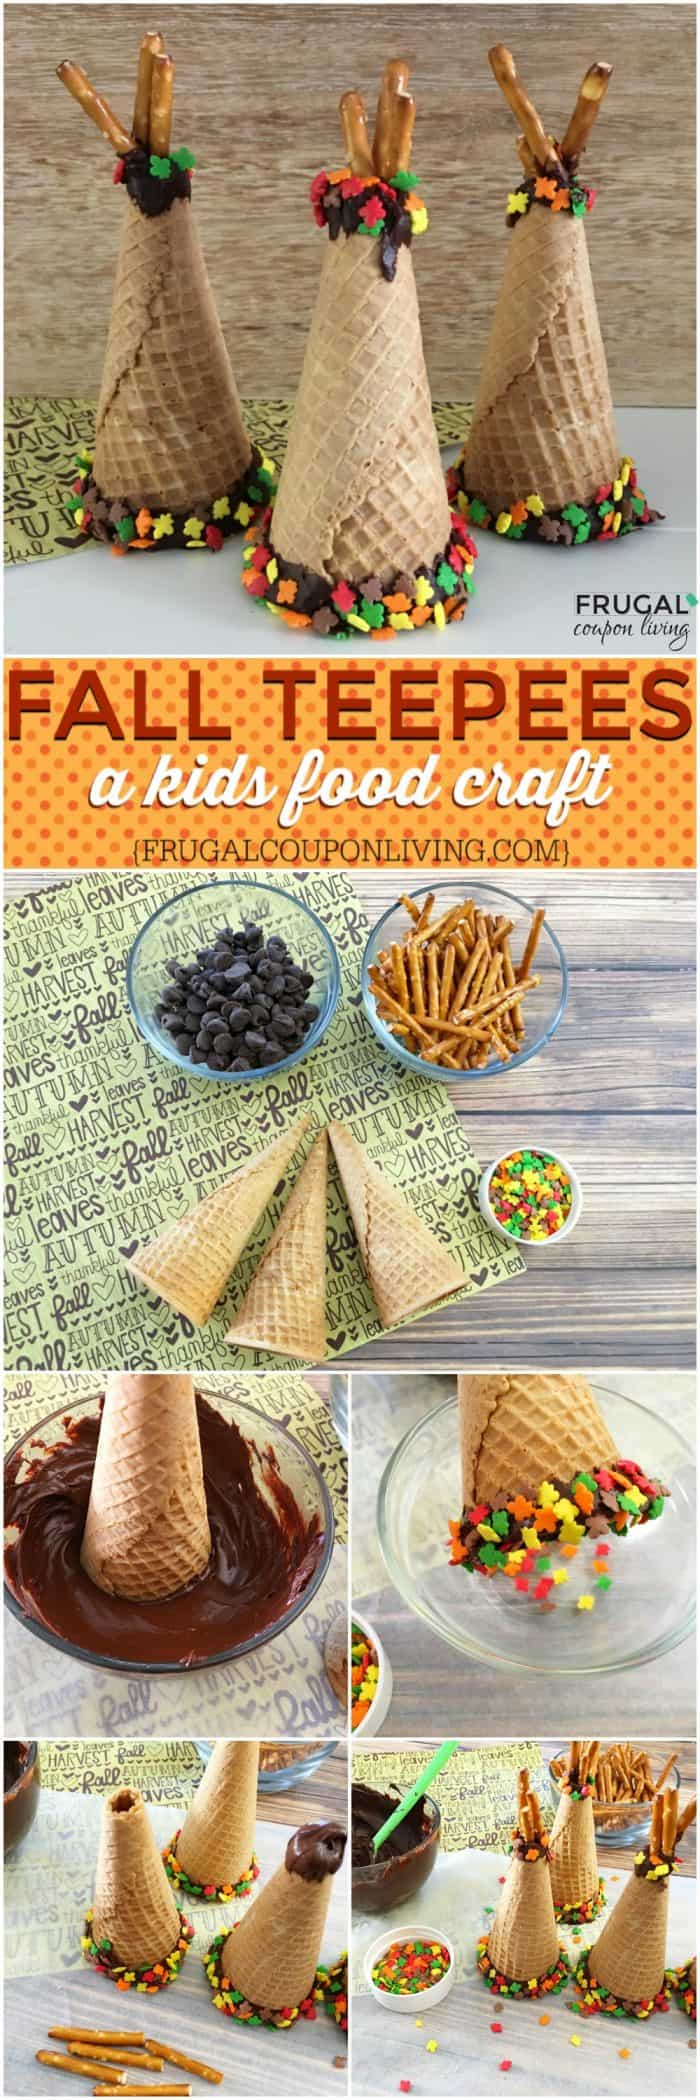 Ice-Cream-Cone-Teepees-long-Collage-Frugal-Coupon-Living